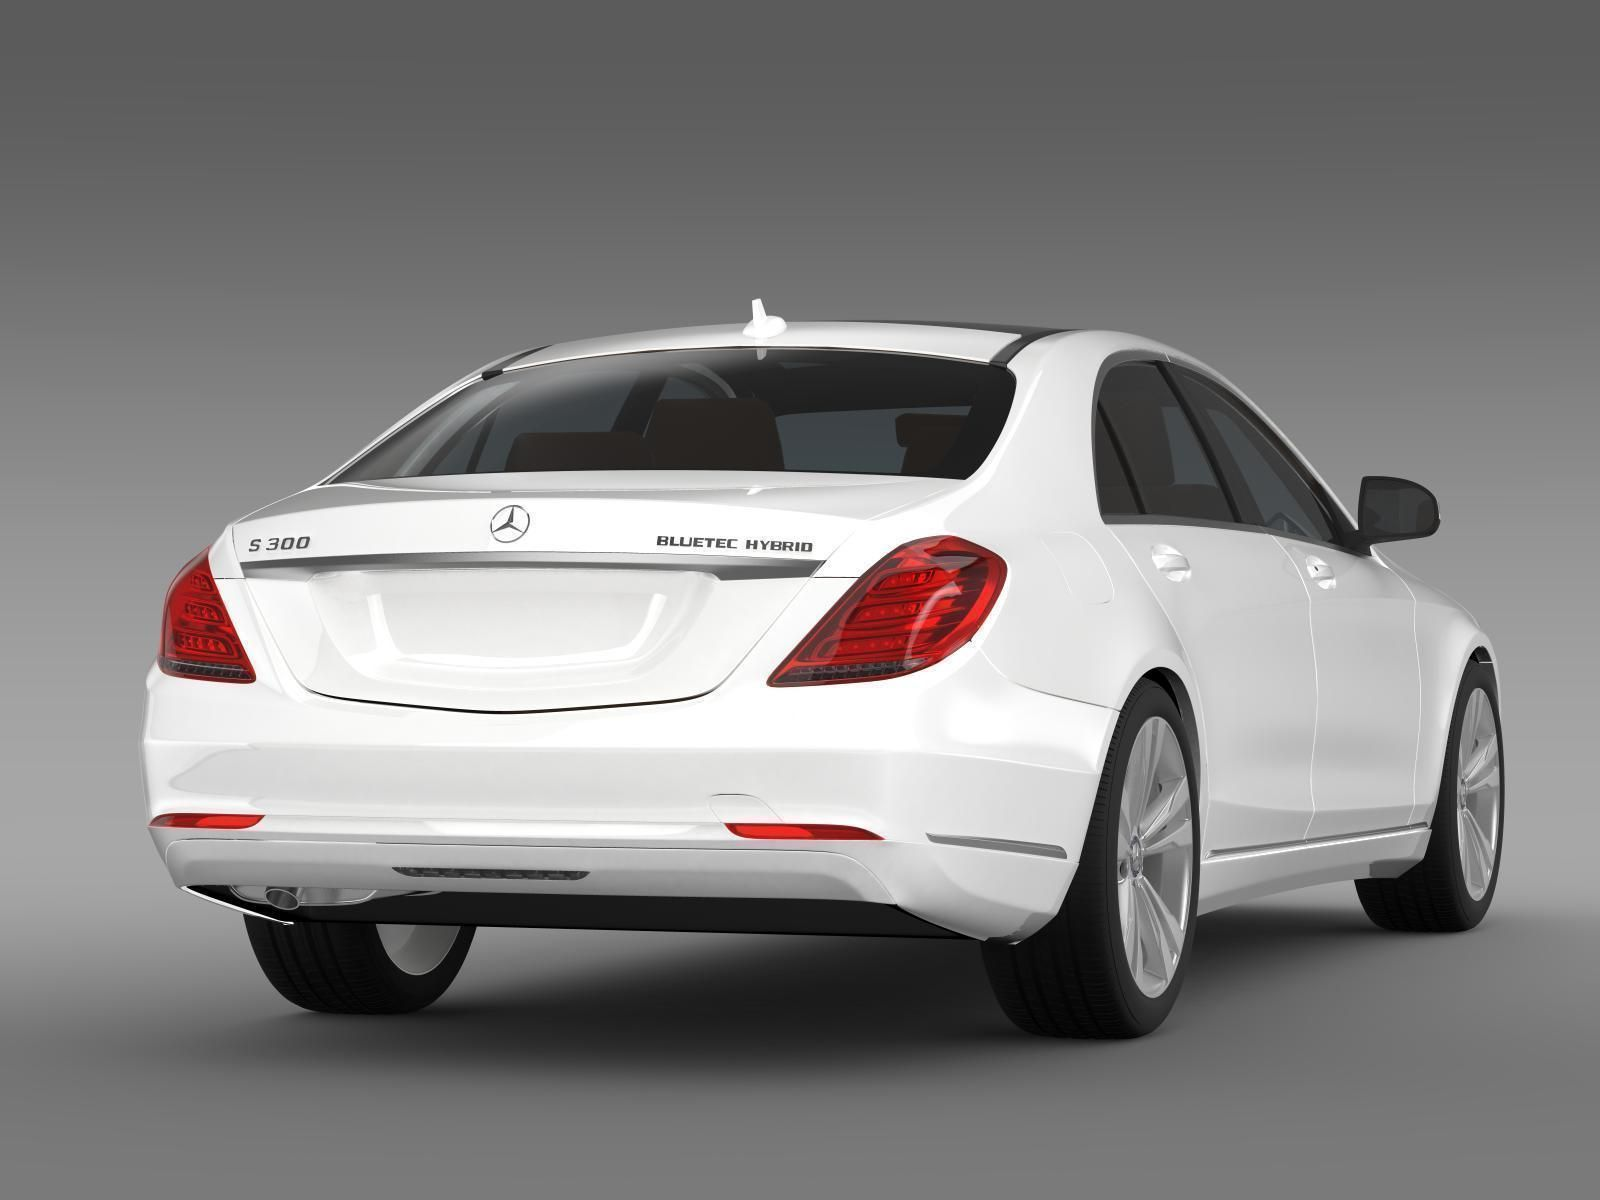 mercedes benz s 300 bluetec hybrid w222 2014 3d model max. Black Bedroom Furniture Sets. Home Design Ideas